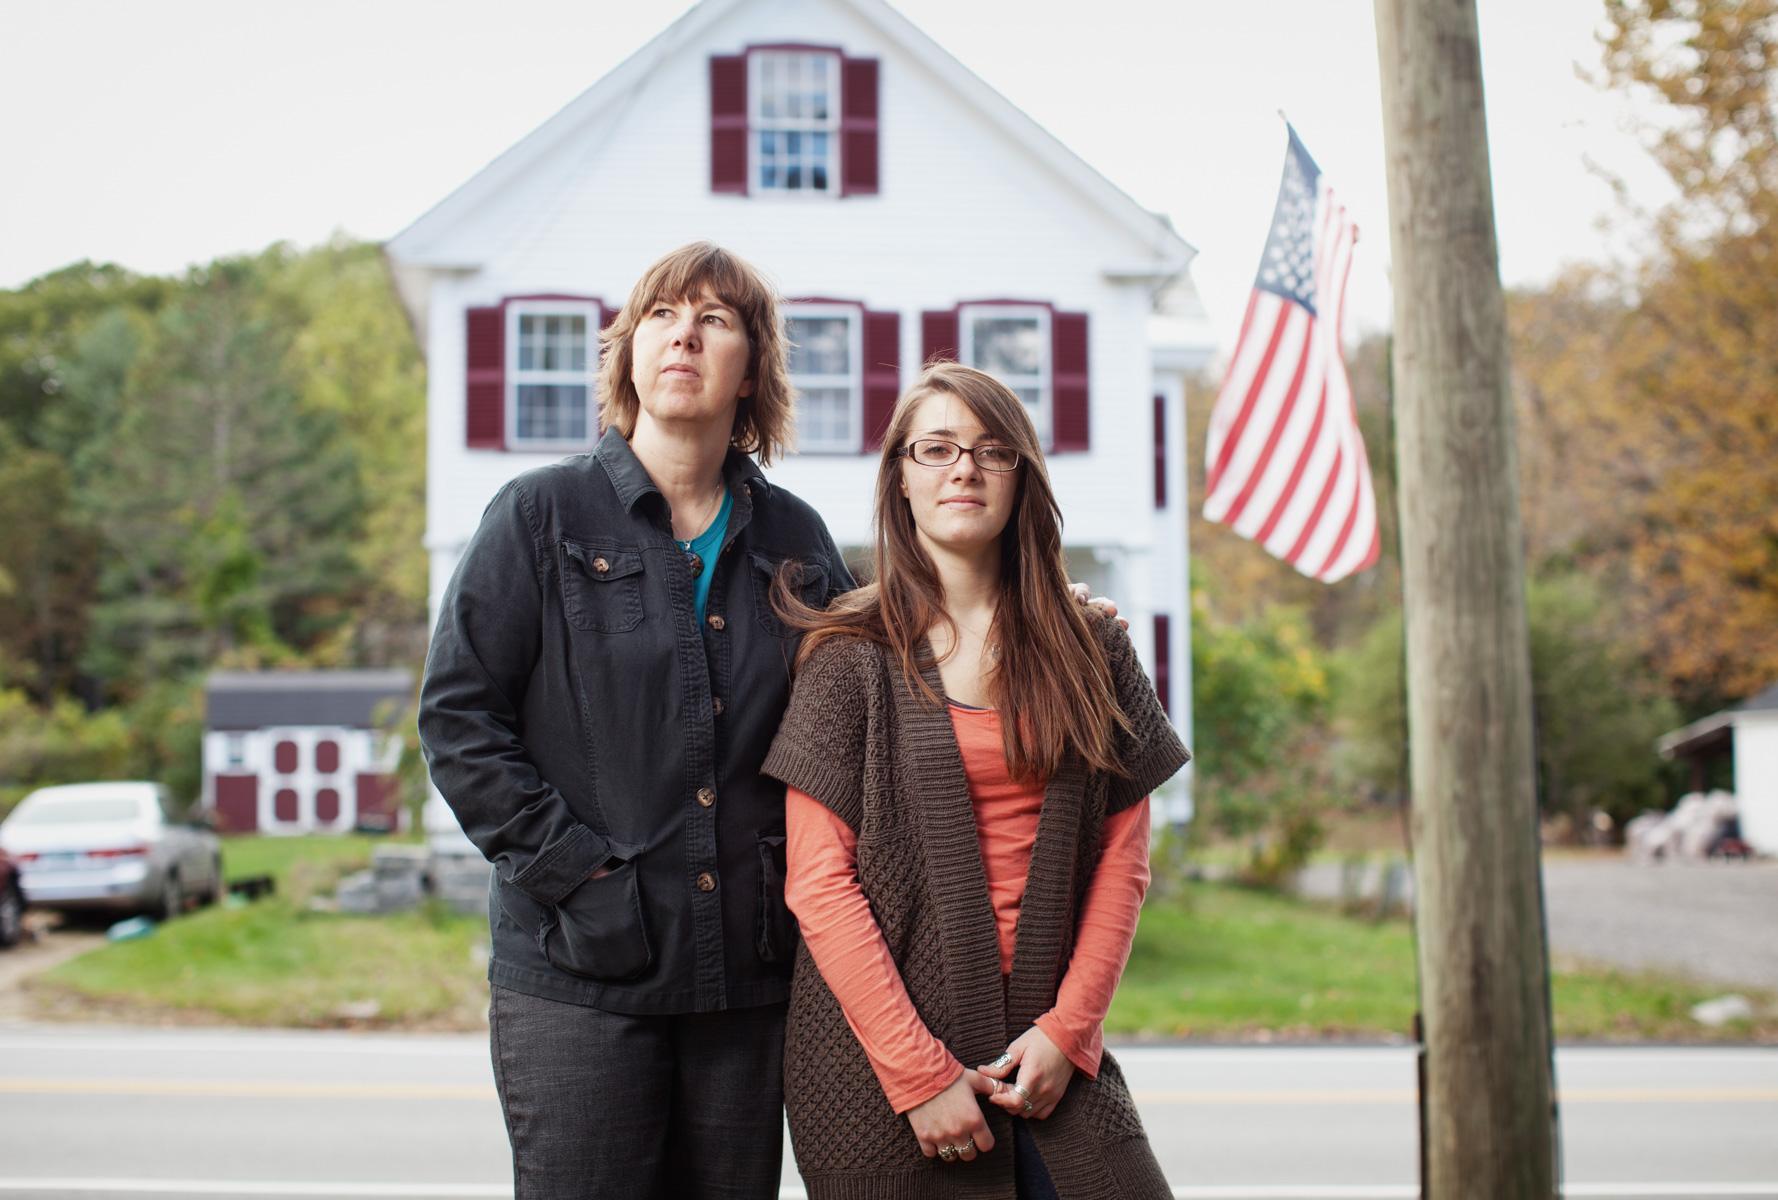 10/5/10 Marlborough, N.H. -- Portrait of Sue Spencer, 50, and her daughter Gaelyn Spencer, 17, at their home in Marlborough, N.H. Oct. 5, 2010.  Photo by Erik Jacobs